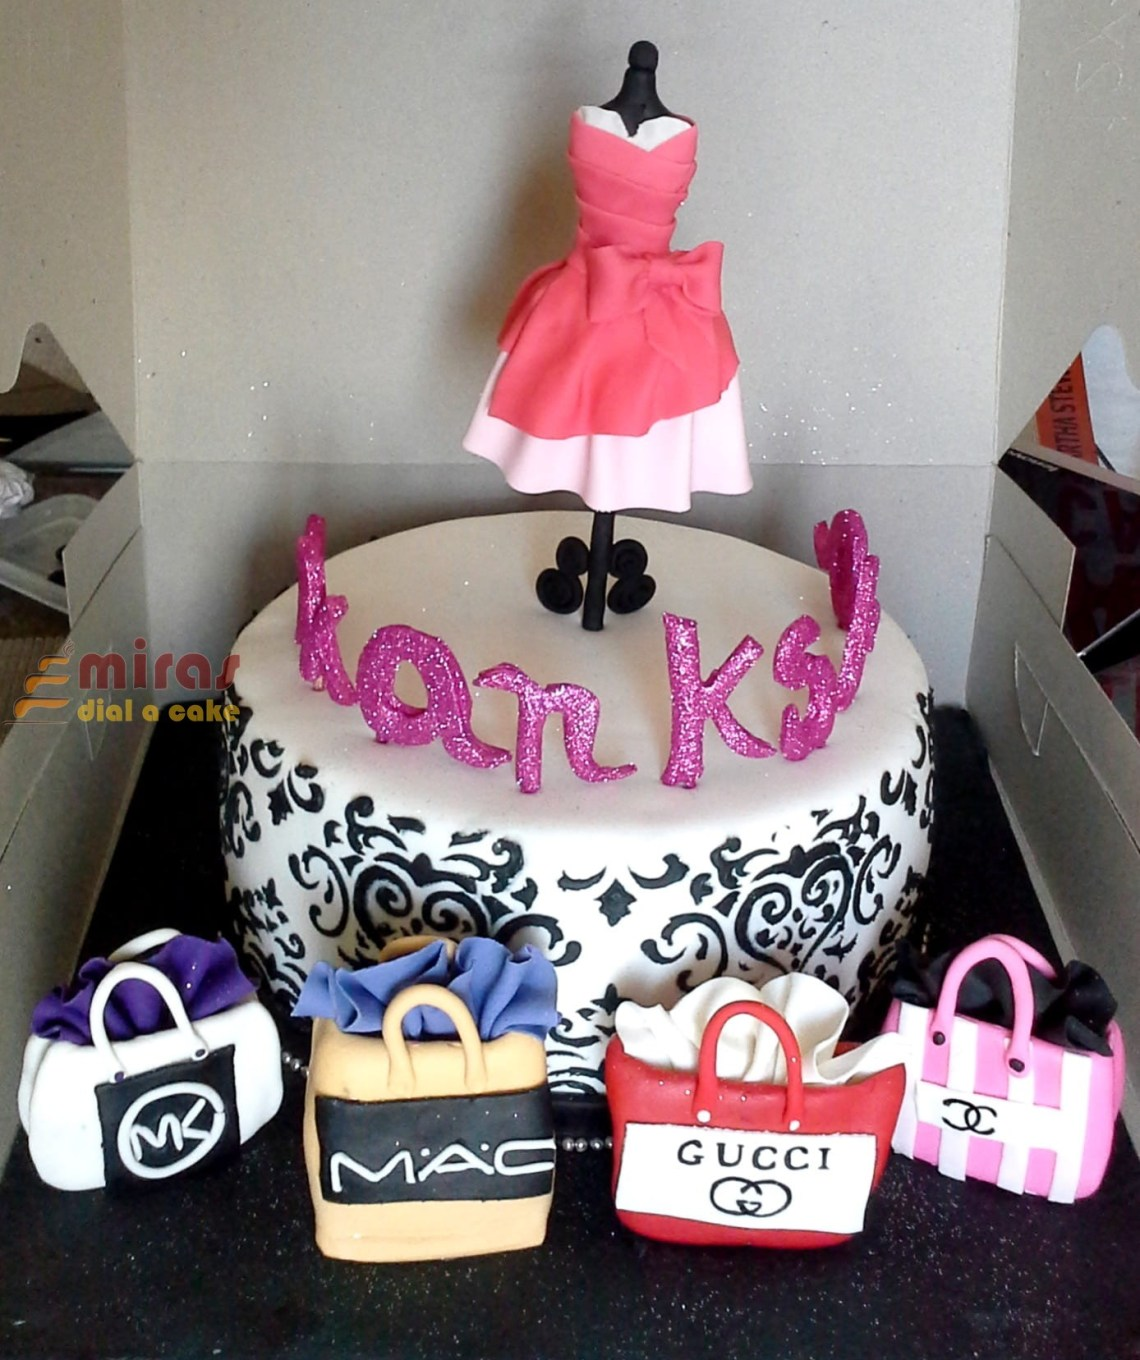 Birthday Cake For Fashion Designer With Name The Cake Boutique